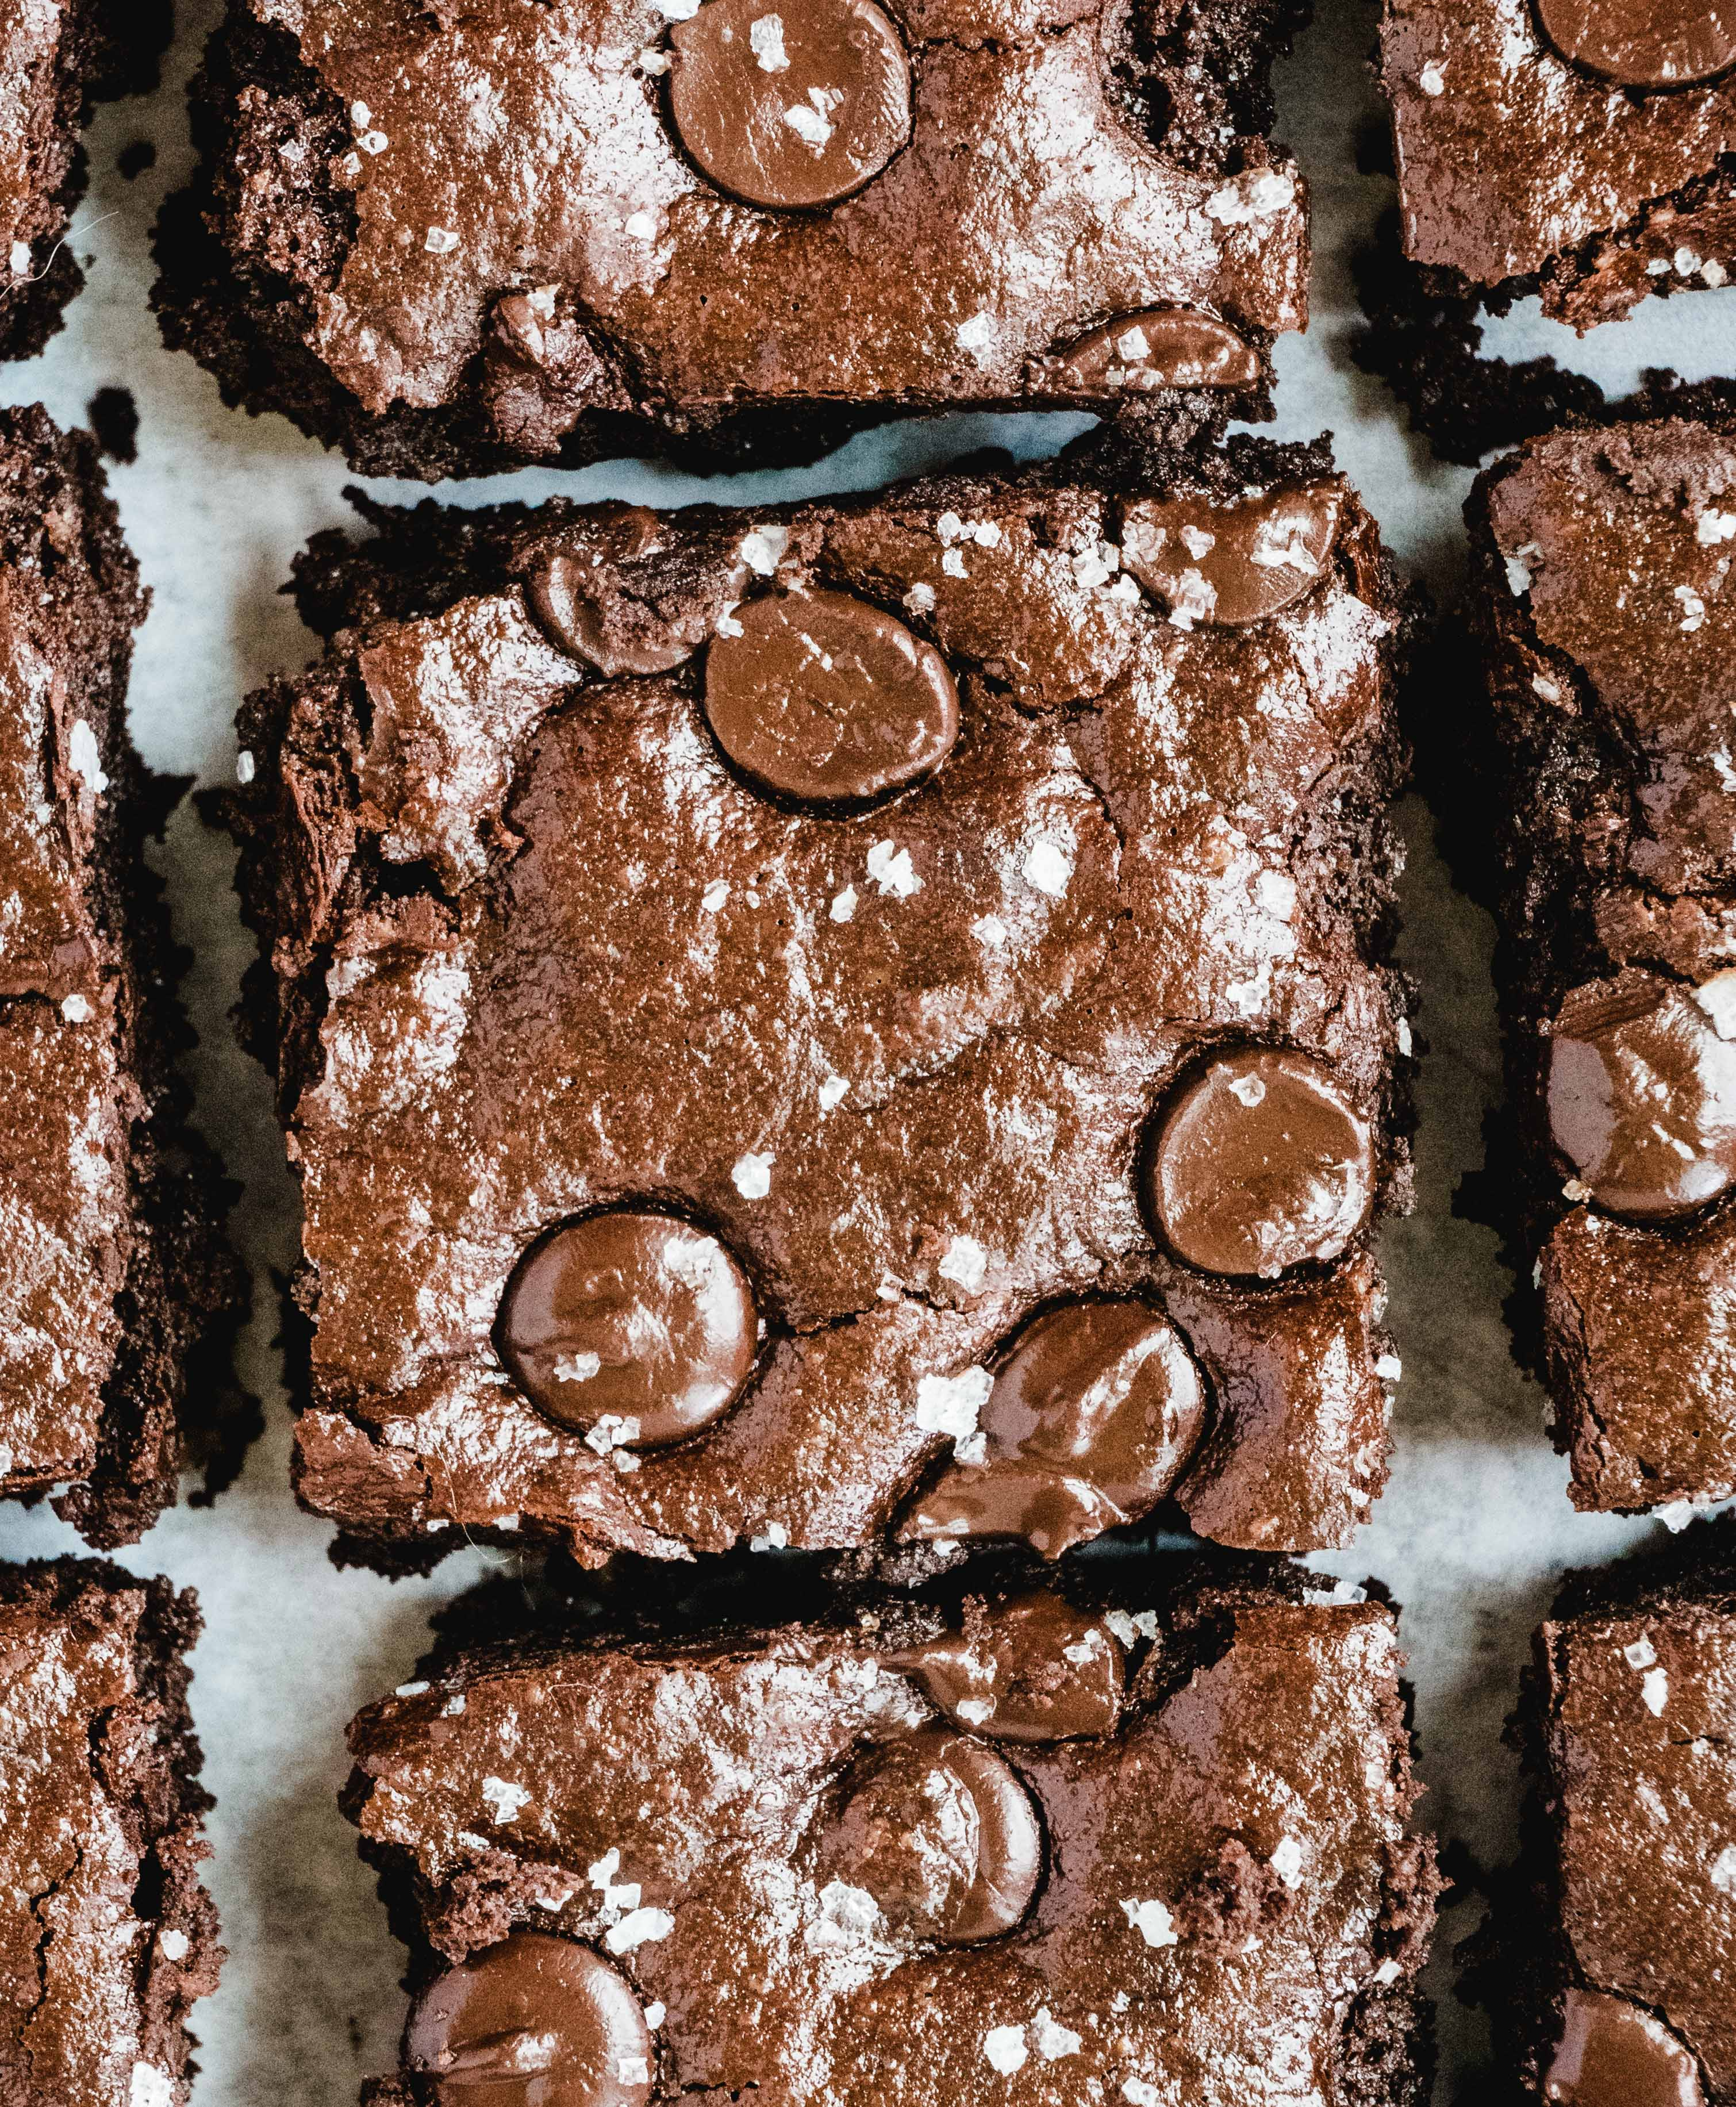 Fudgy Gooey Healthy Brownies | These fudgy gooey healthy brownies are hands down the best batch of brownies I have made. They've got that rich intense dark chocolate flavor and luscious moist texture. Even better? These gooey healthy brownies are gluten free, dairy free and paleo friendly.| #paleodessert #healthybrownies #healthydessert #glutenfreedessert #brownierecipe